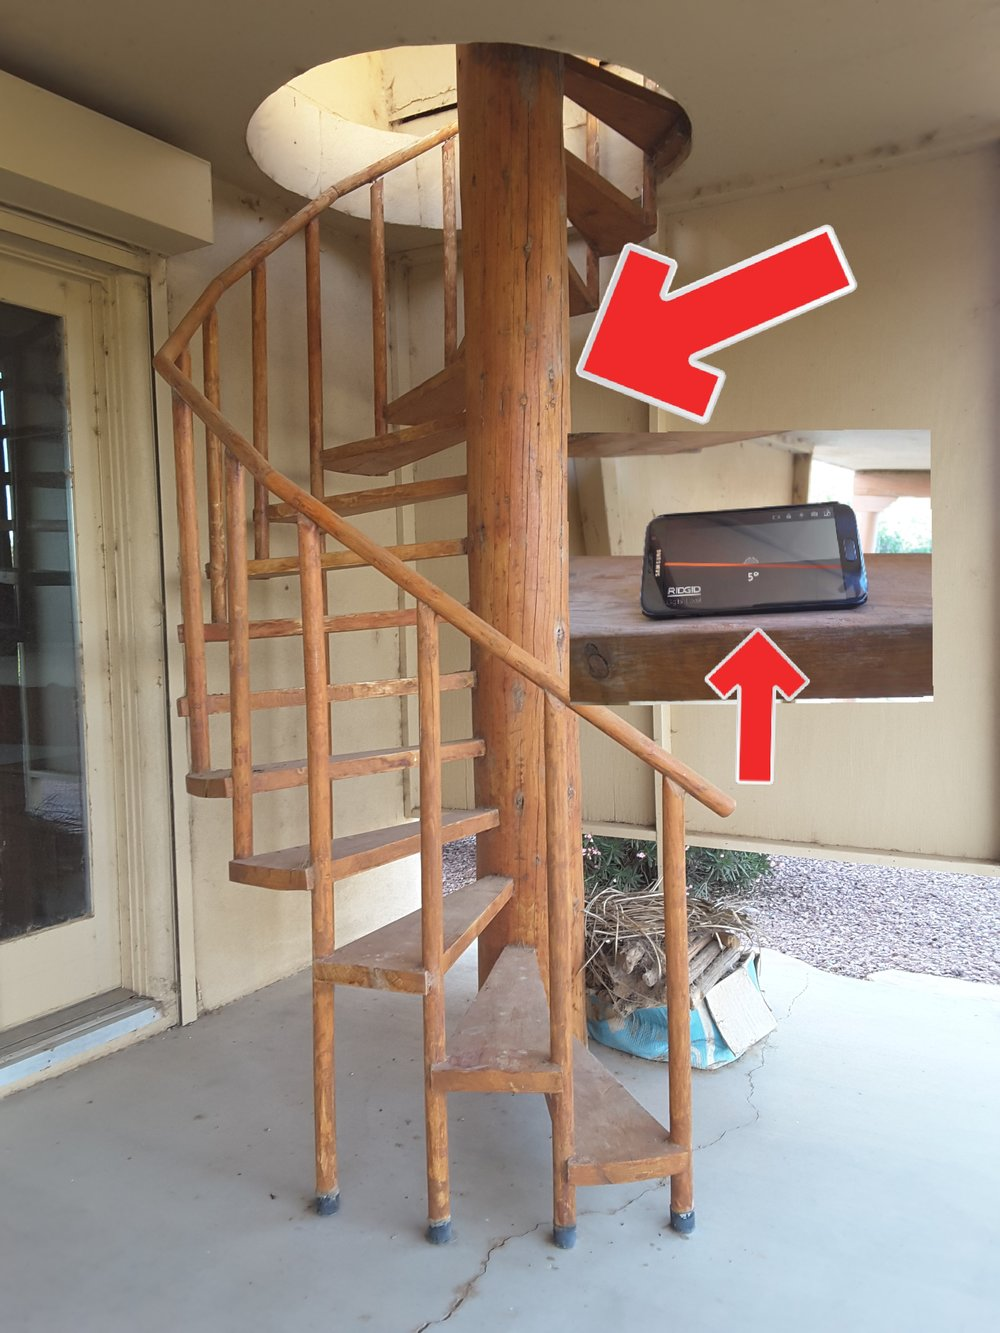 Spiral staircases are inherently dangerous. Uneven treads, open risers, wide baluster spacing and the treads have a 5° slope. This staircase needs removal.